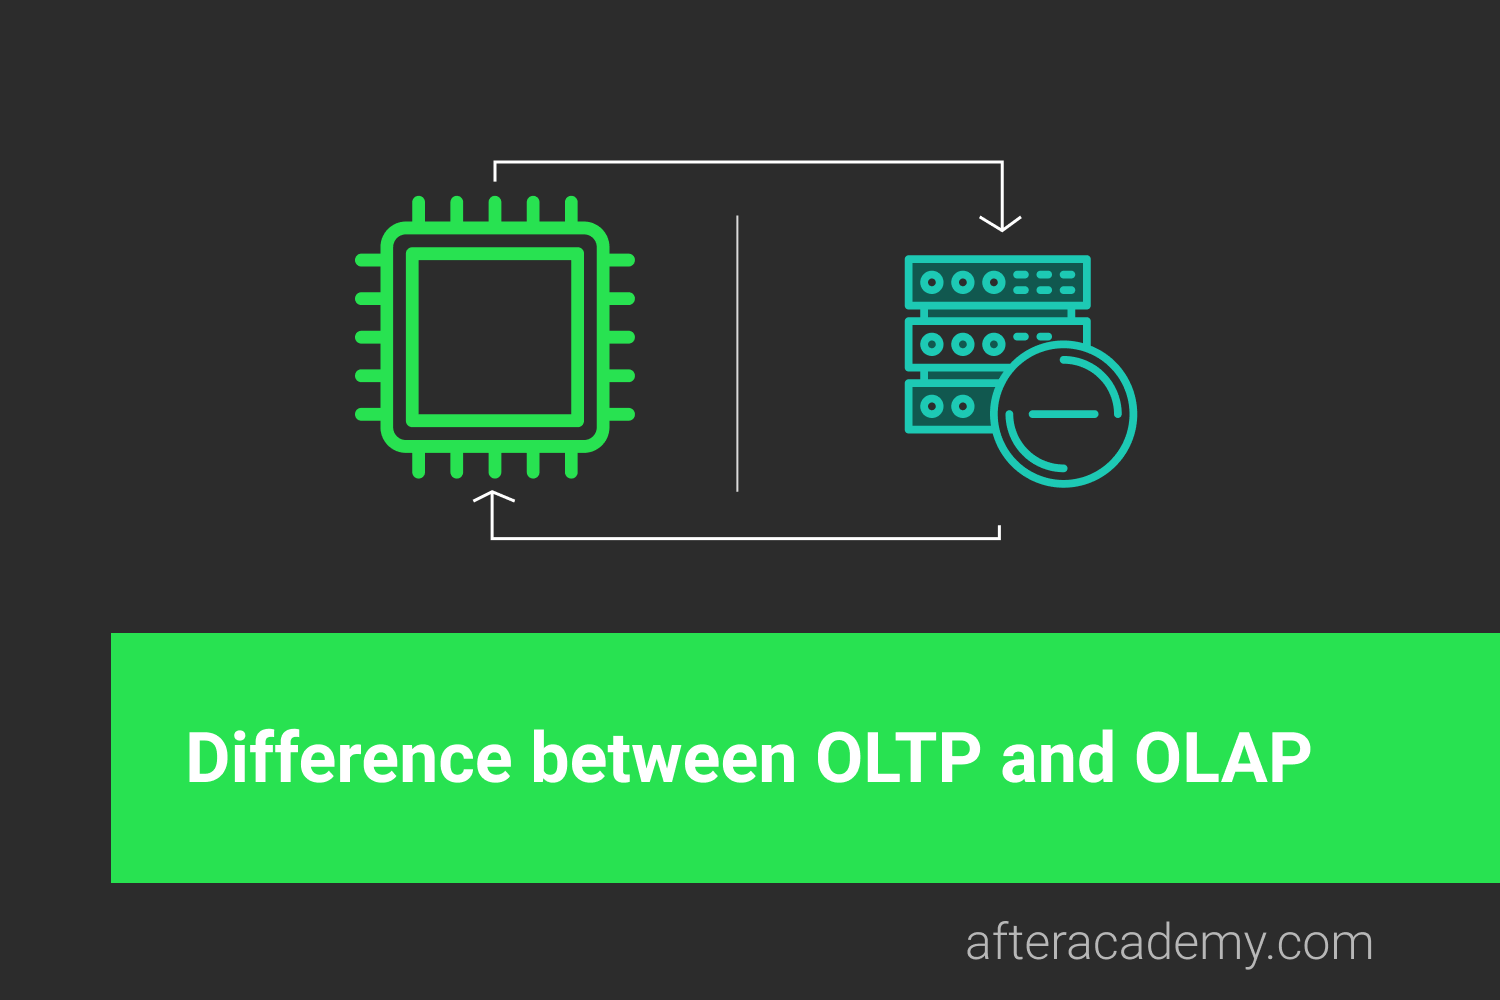 What is the difference between OLTP and OLAP?